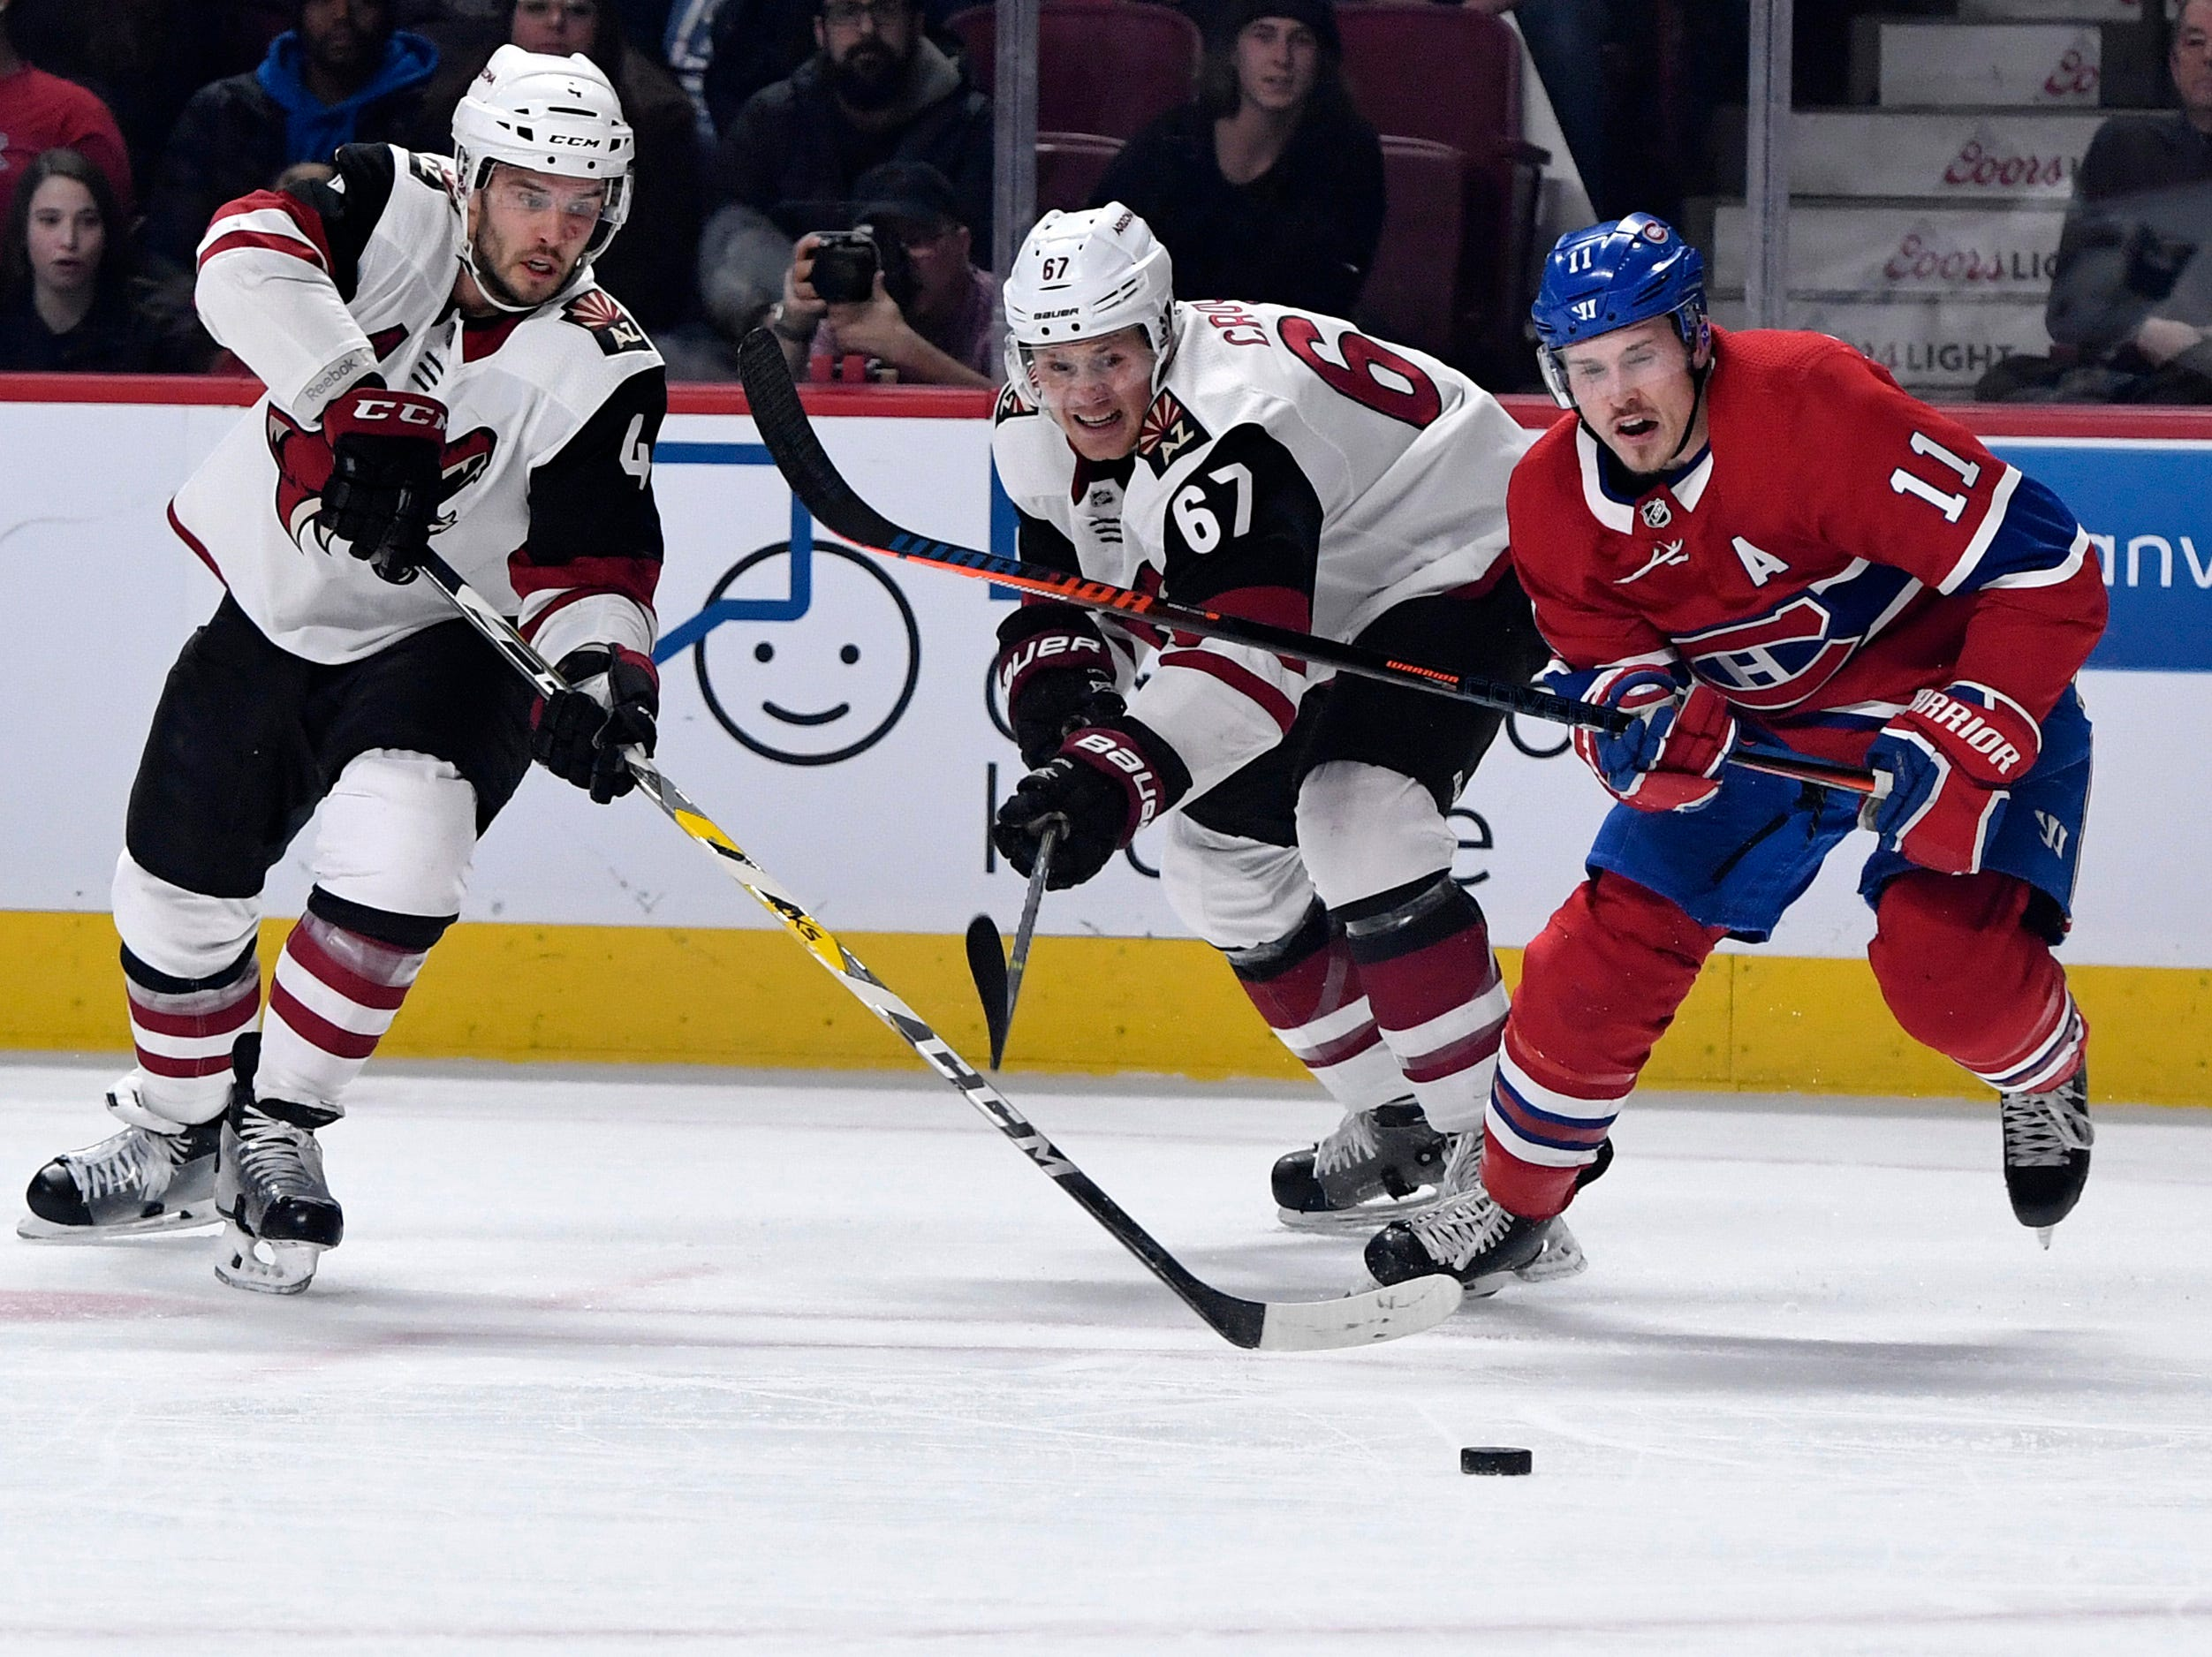 Jan 23, 2019; Montreal, Quebec, CAN; Montreal Canadiens forward Brendan Gallagher (11) chases the puck ahead of Arizona Coyotes defenseman Niklas Hjalmarsson (4) and teammate Lawson Crouse (67) during the first period at the Bell Centre. Mandatory Credit: Eric Bolte-USA TODAY Sports